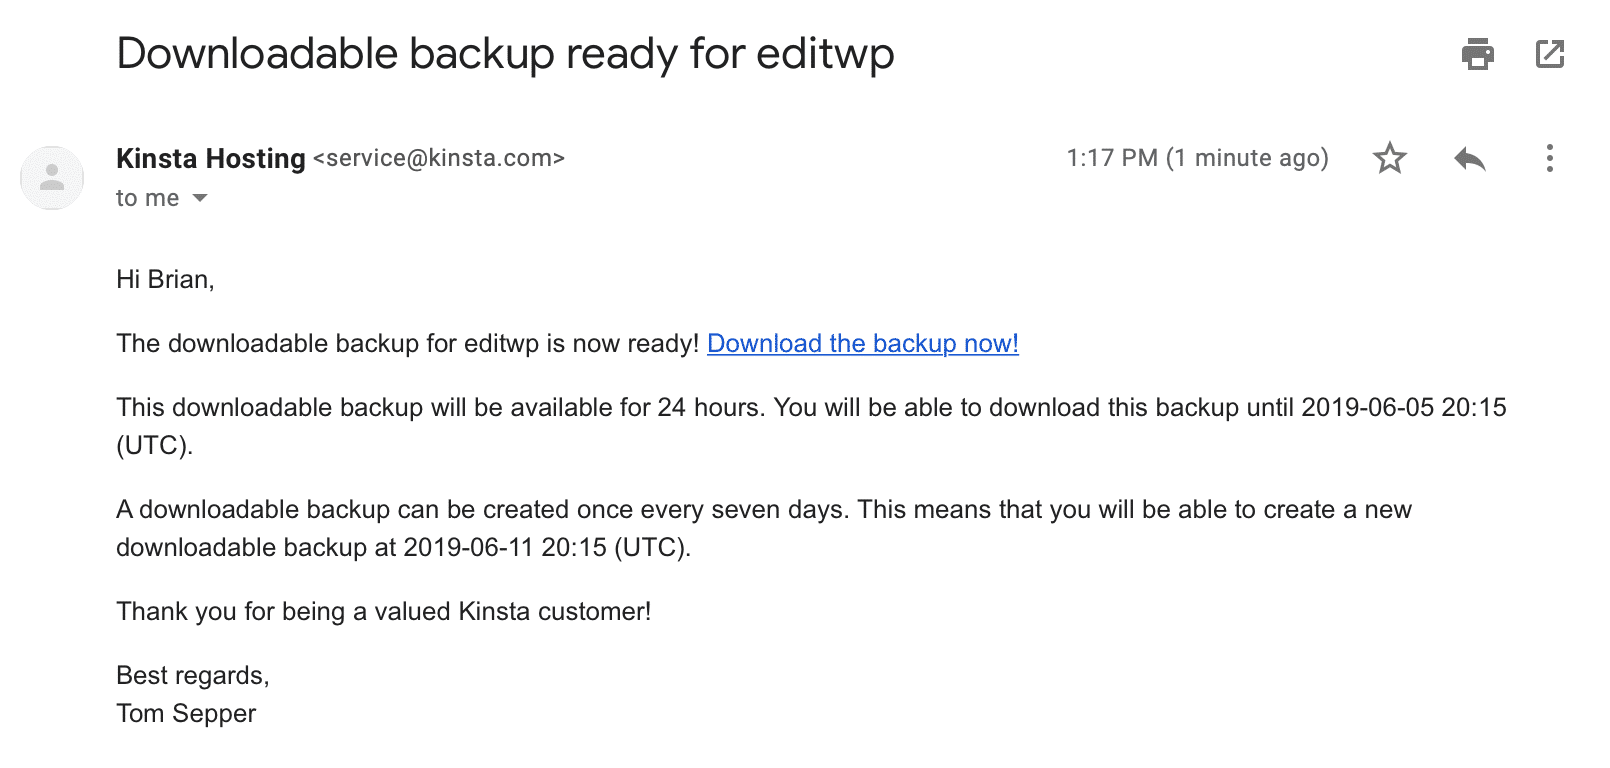 E-mail de backup para download